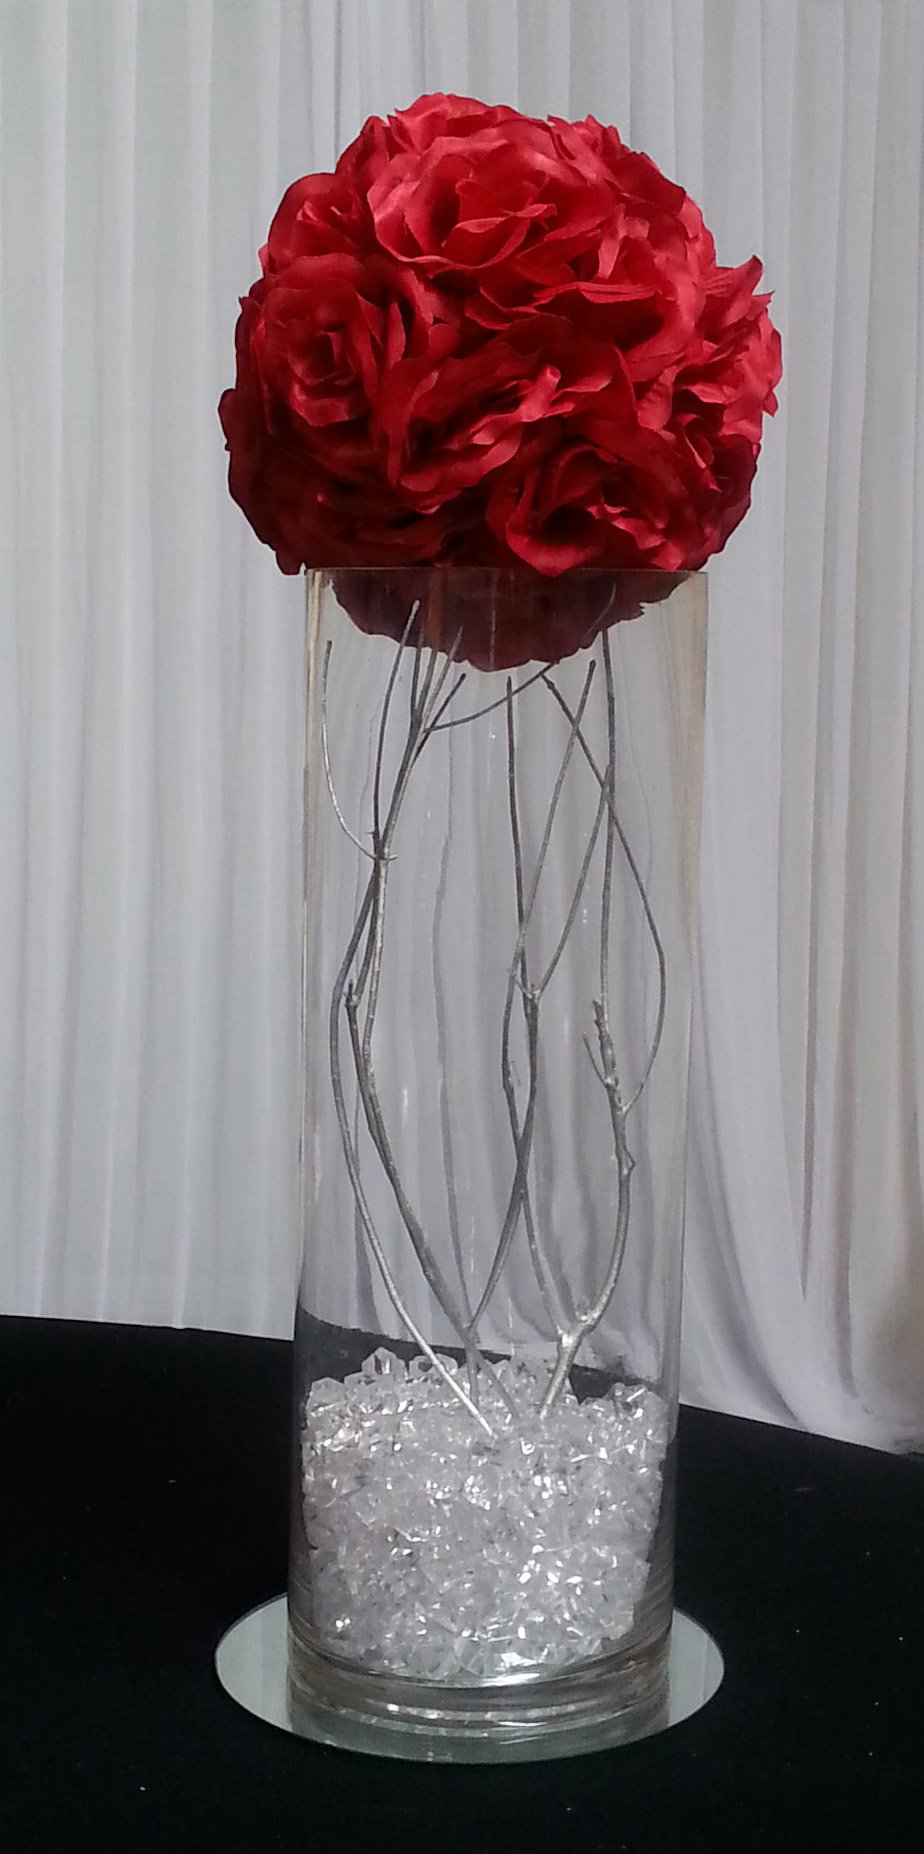 Roseball and Silver twig centrepiece